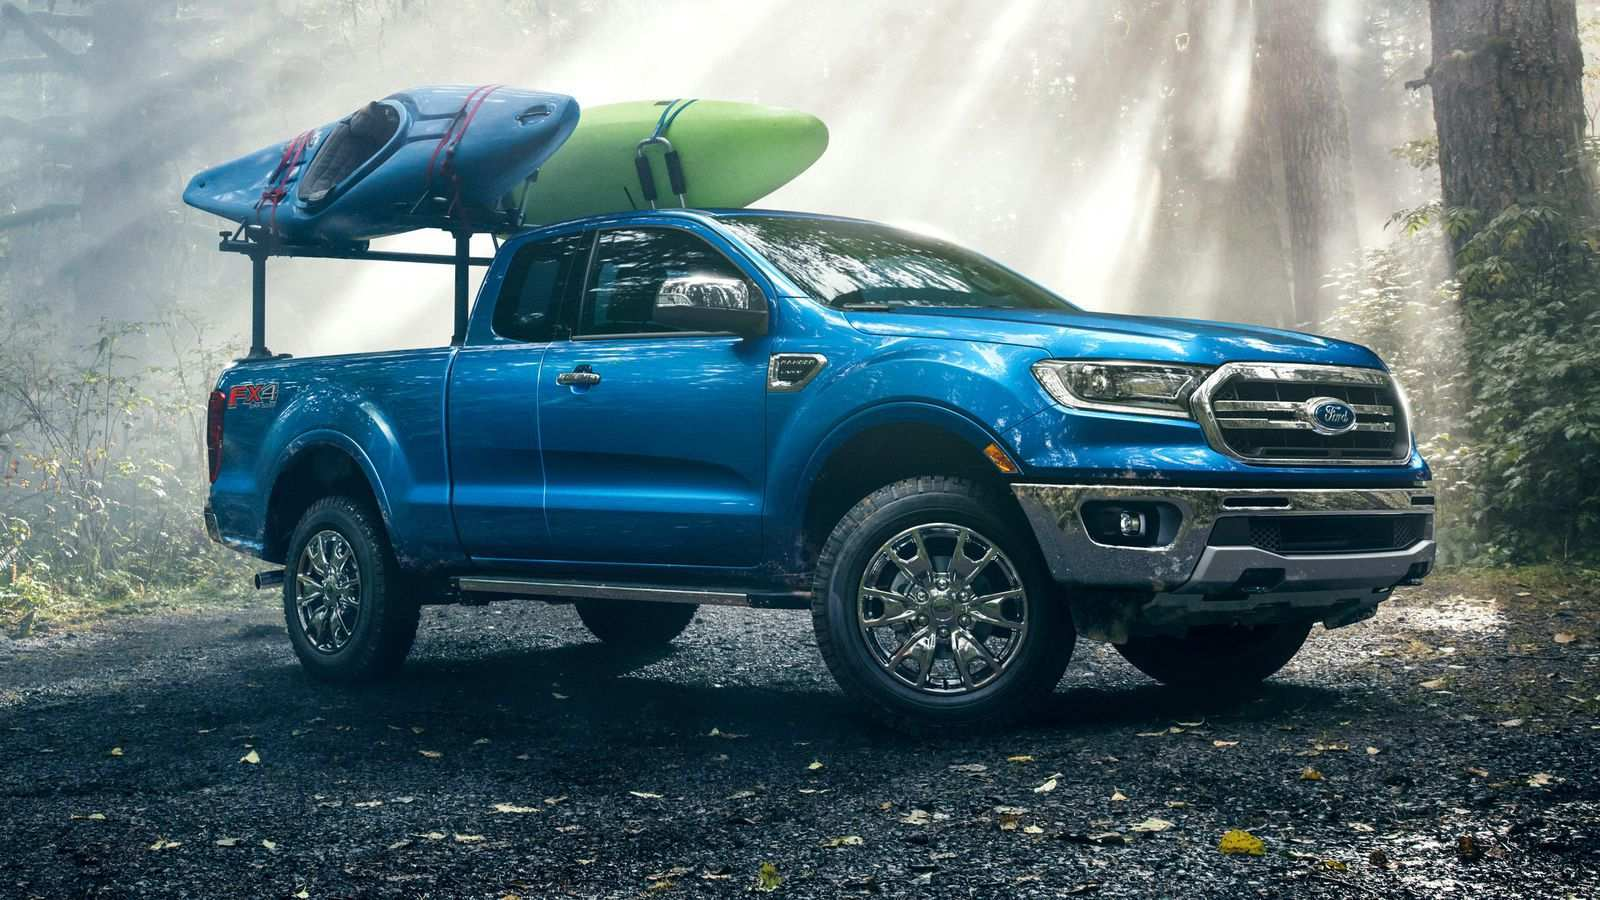 71 Great 2019 Ford Ranger Images Spy Shoot for 2019 Ford Ranger Images